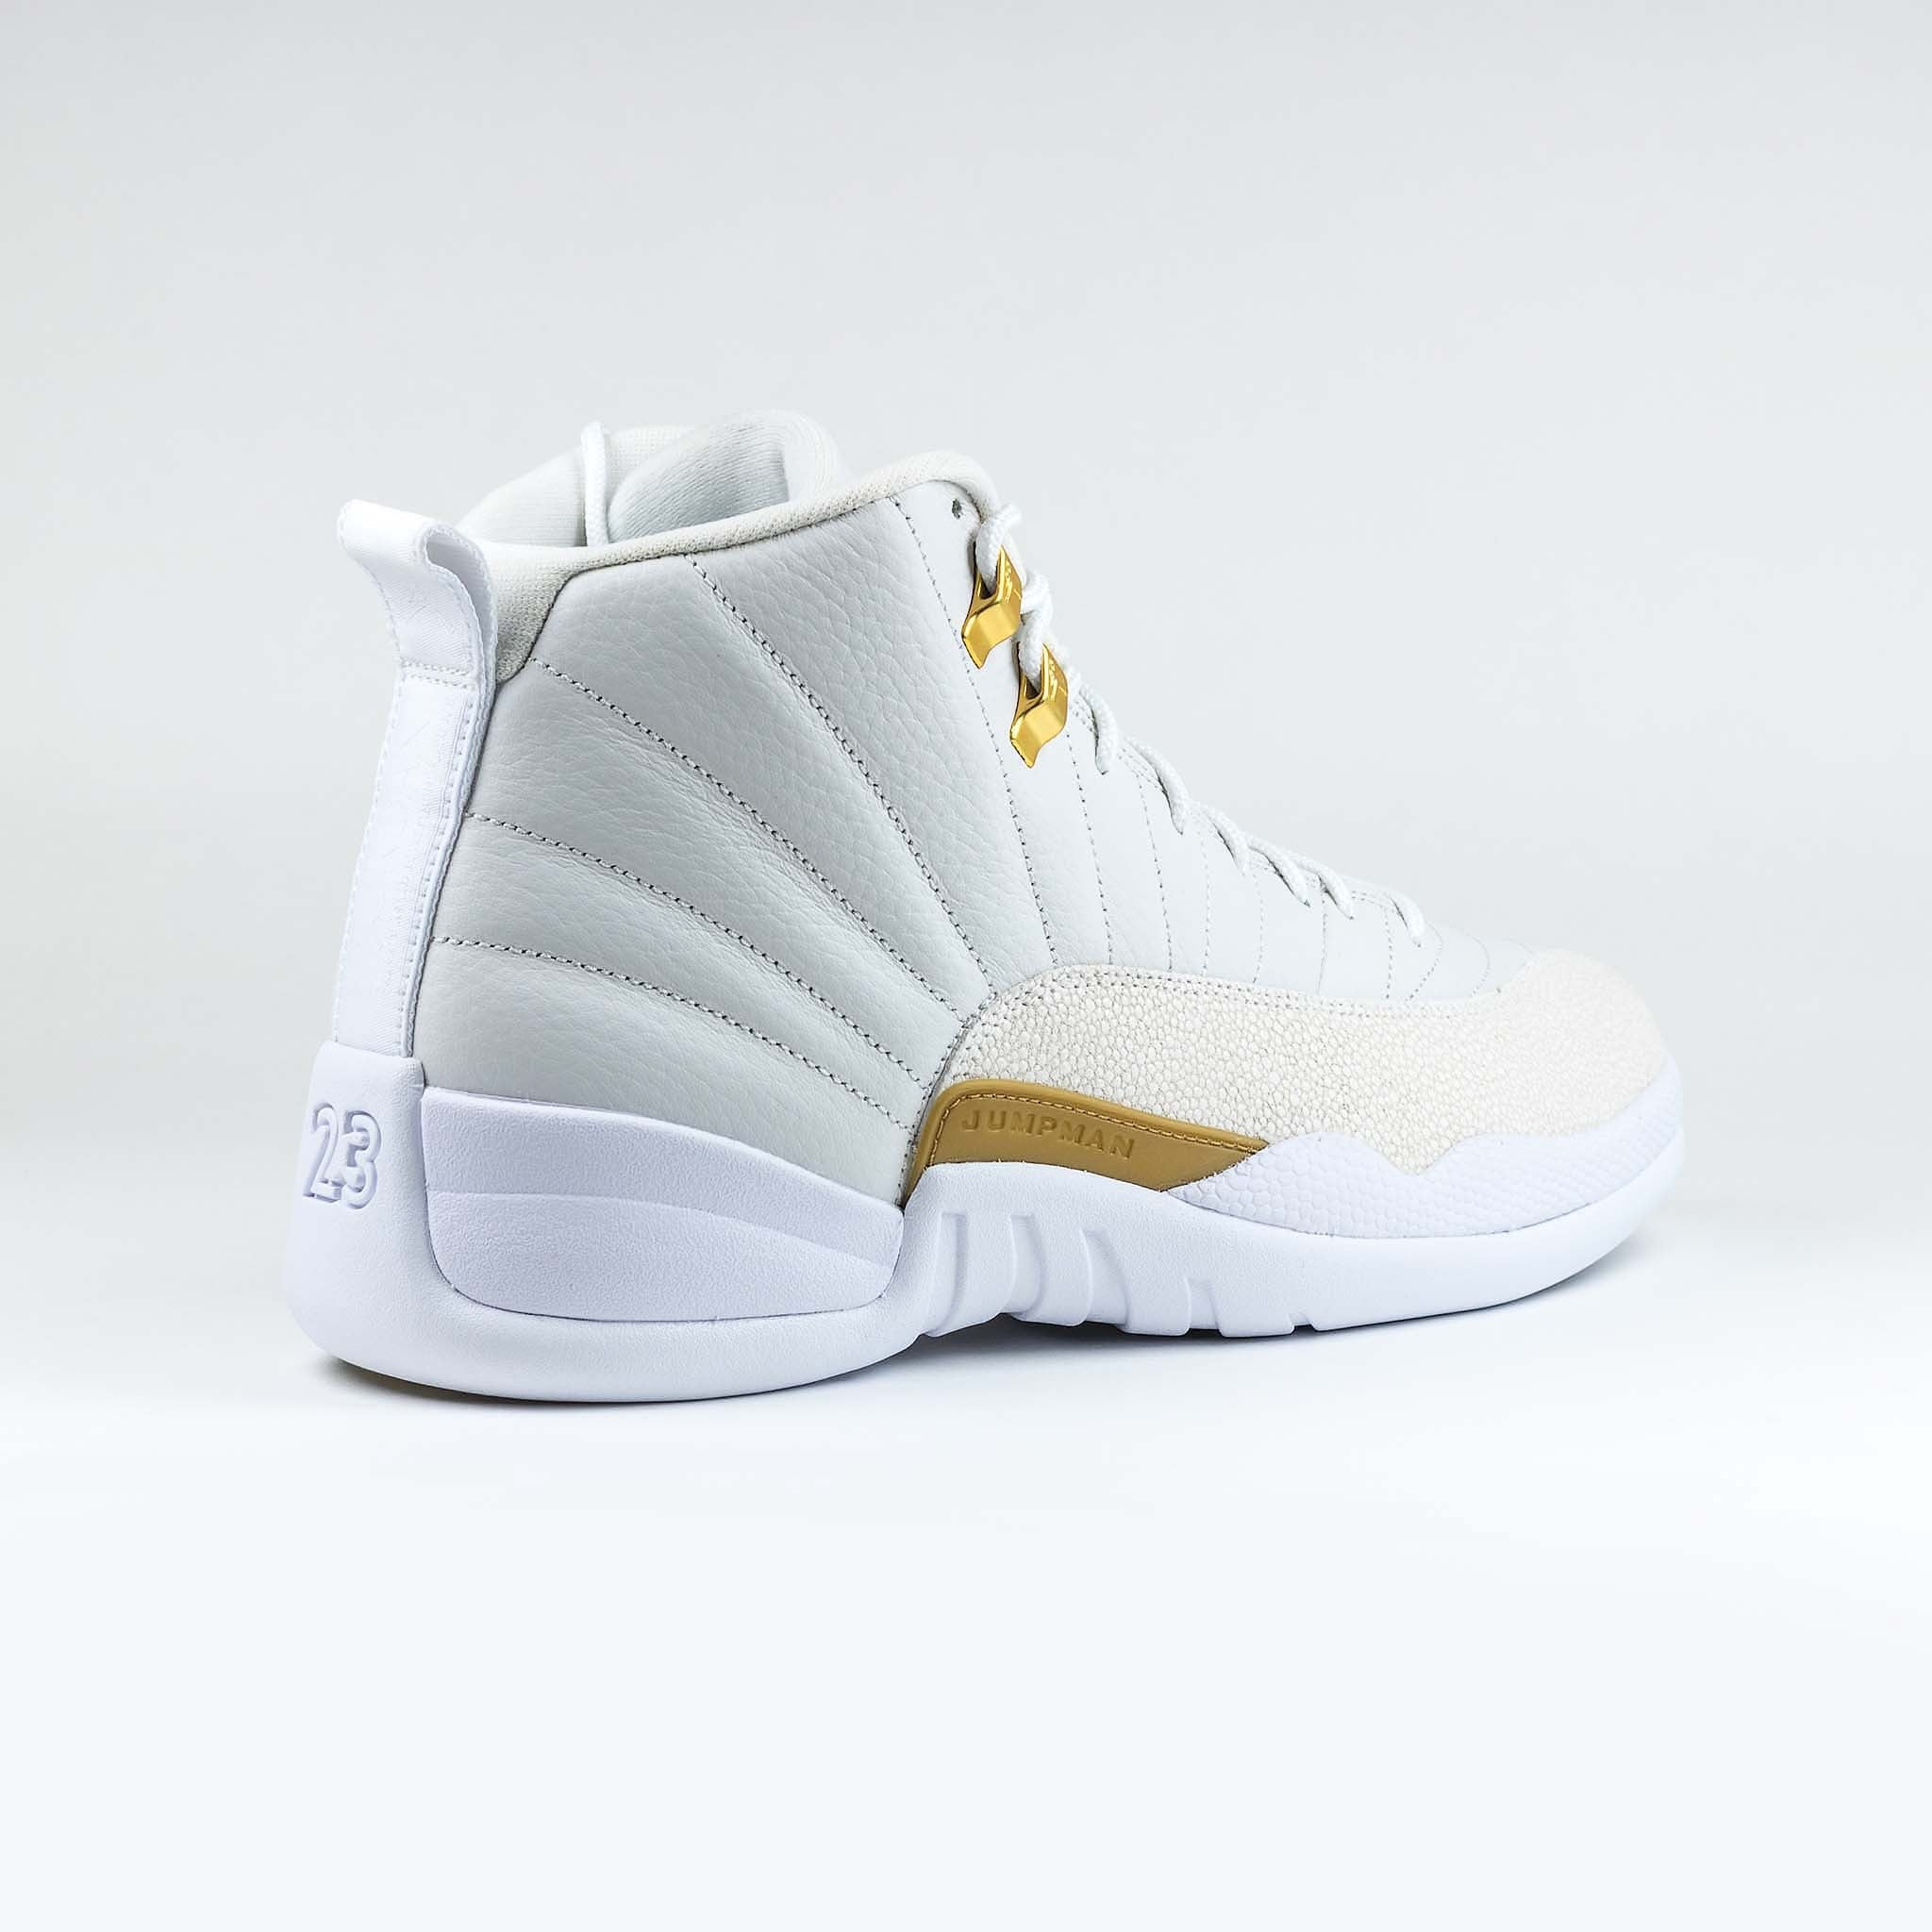 f46d24ff8c0bb2 Air Jordan 12 Retro OVO – Crepslocker